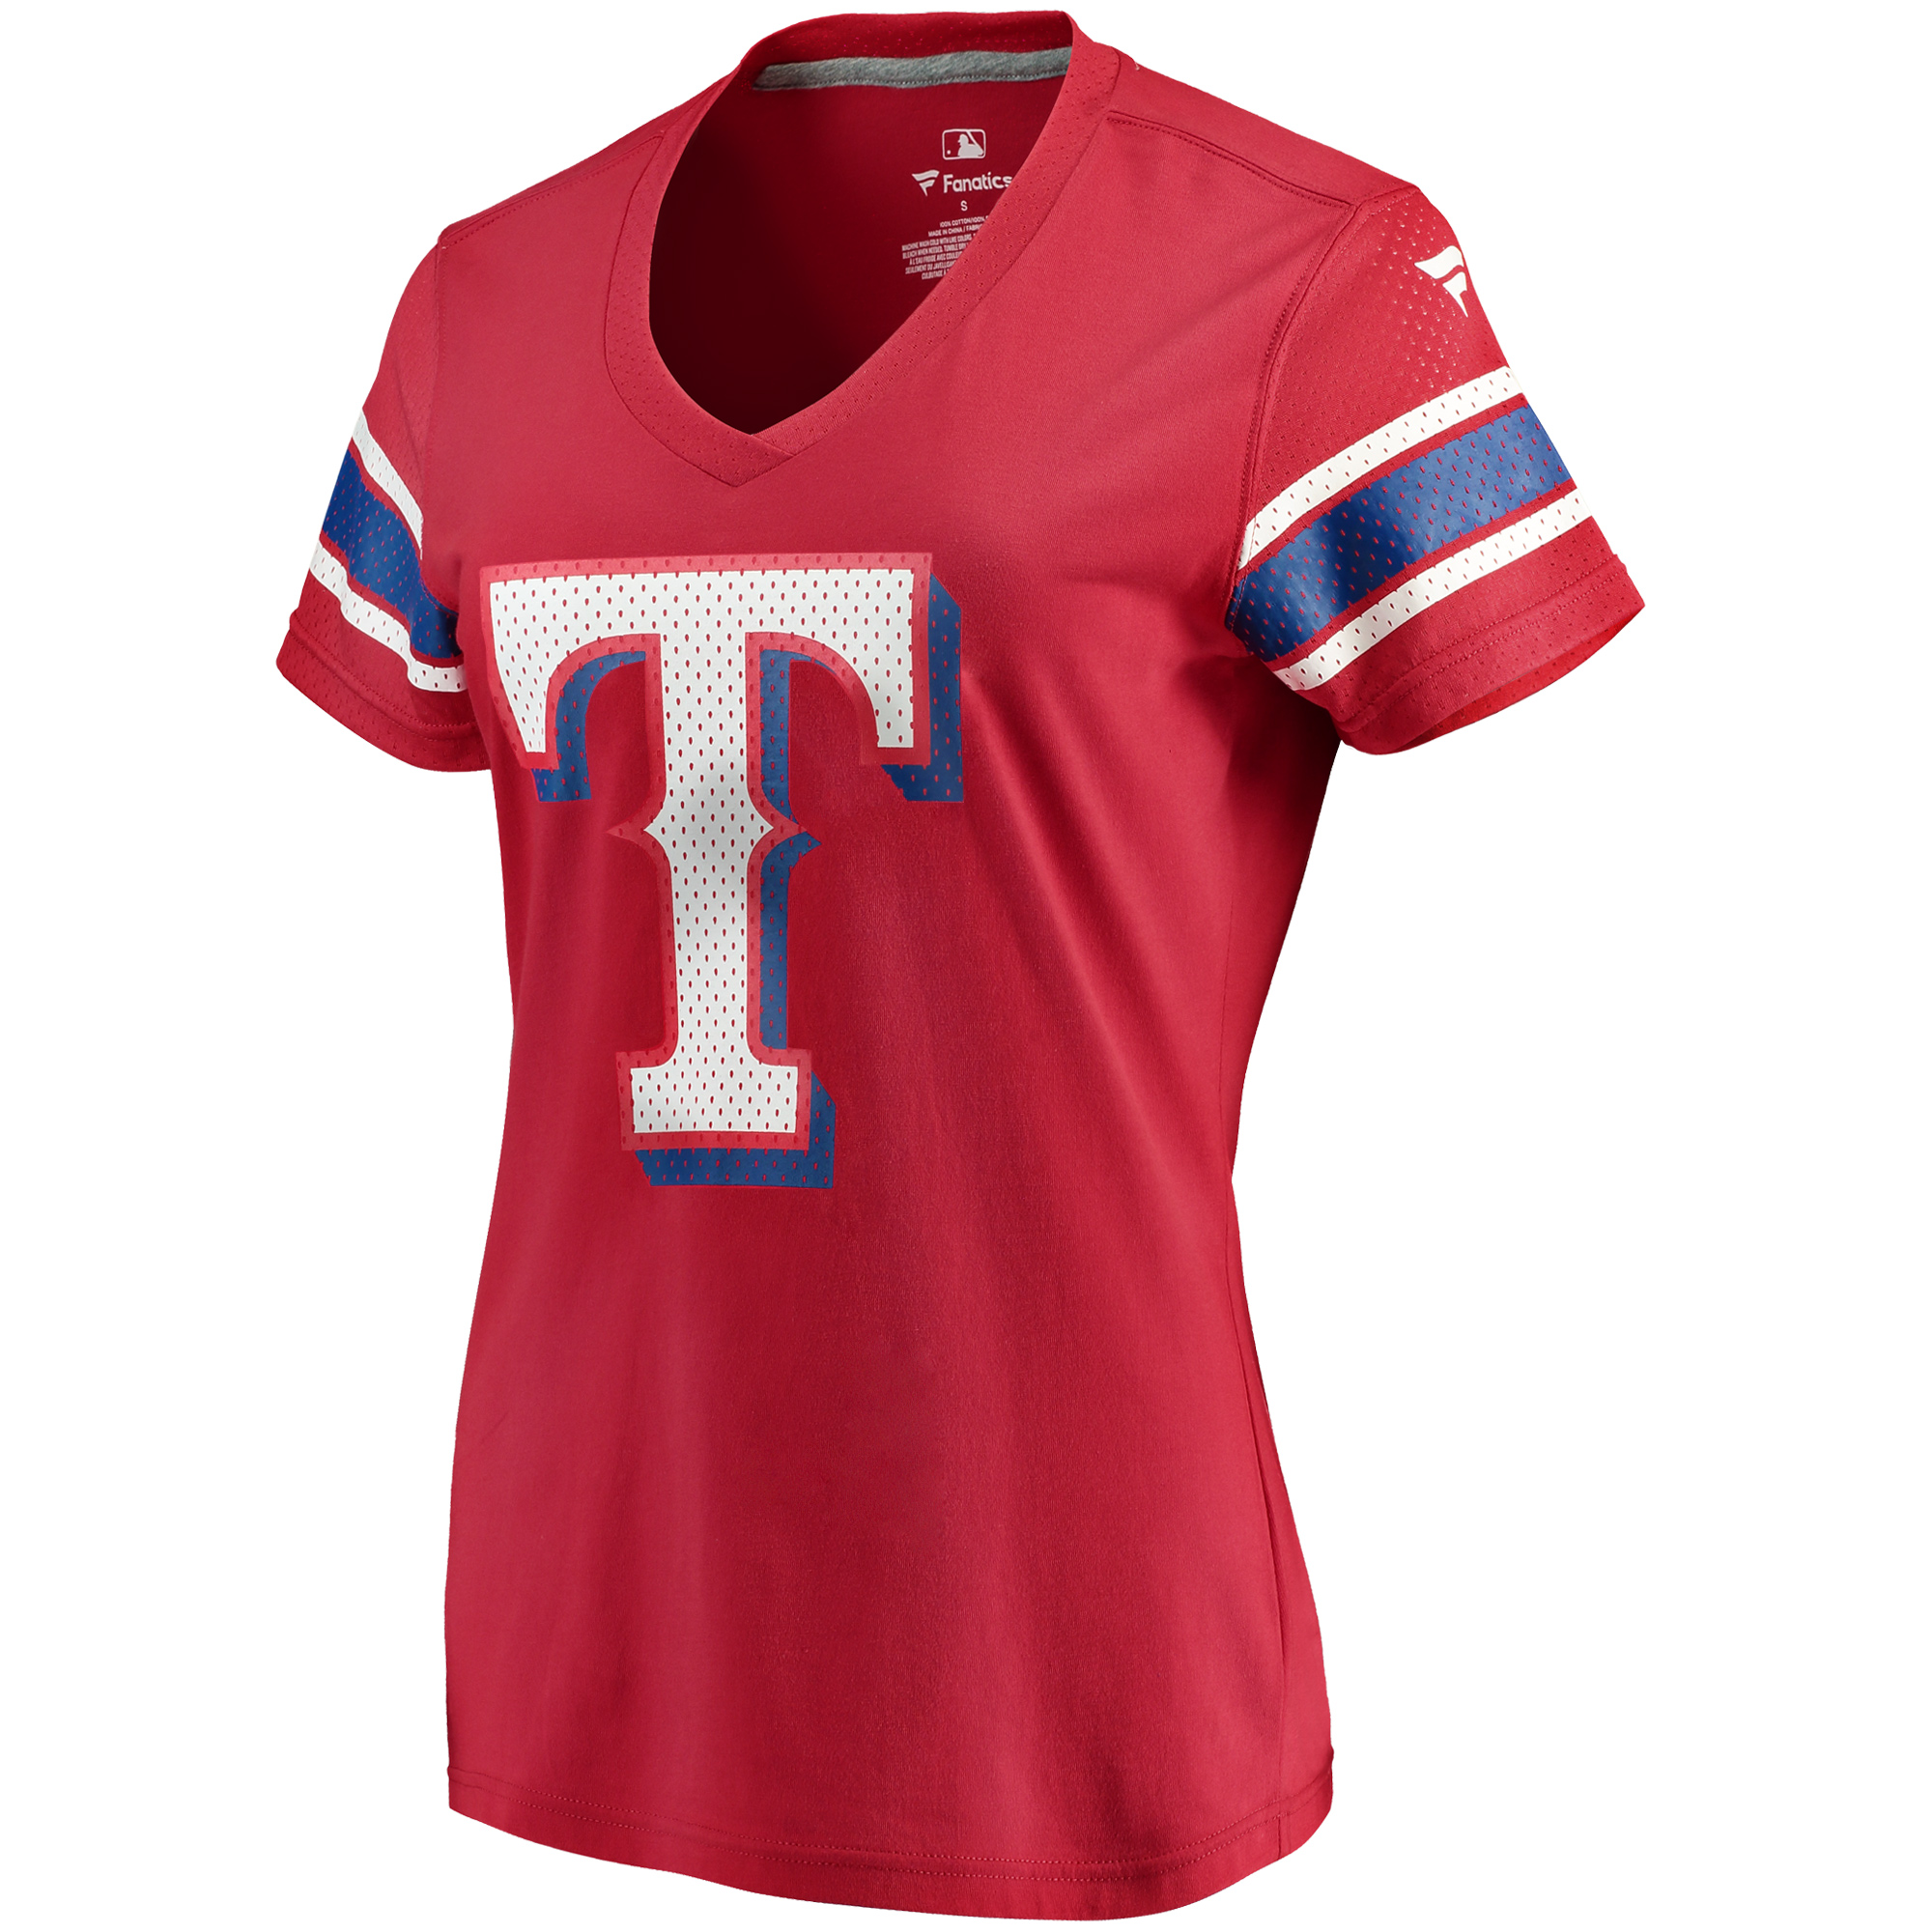 Women's Fanatics Branded Red Texas Rangers Iconic V-Neck T-Shirt